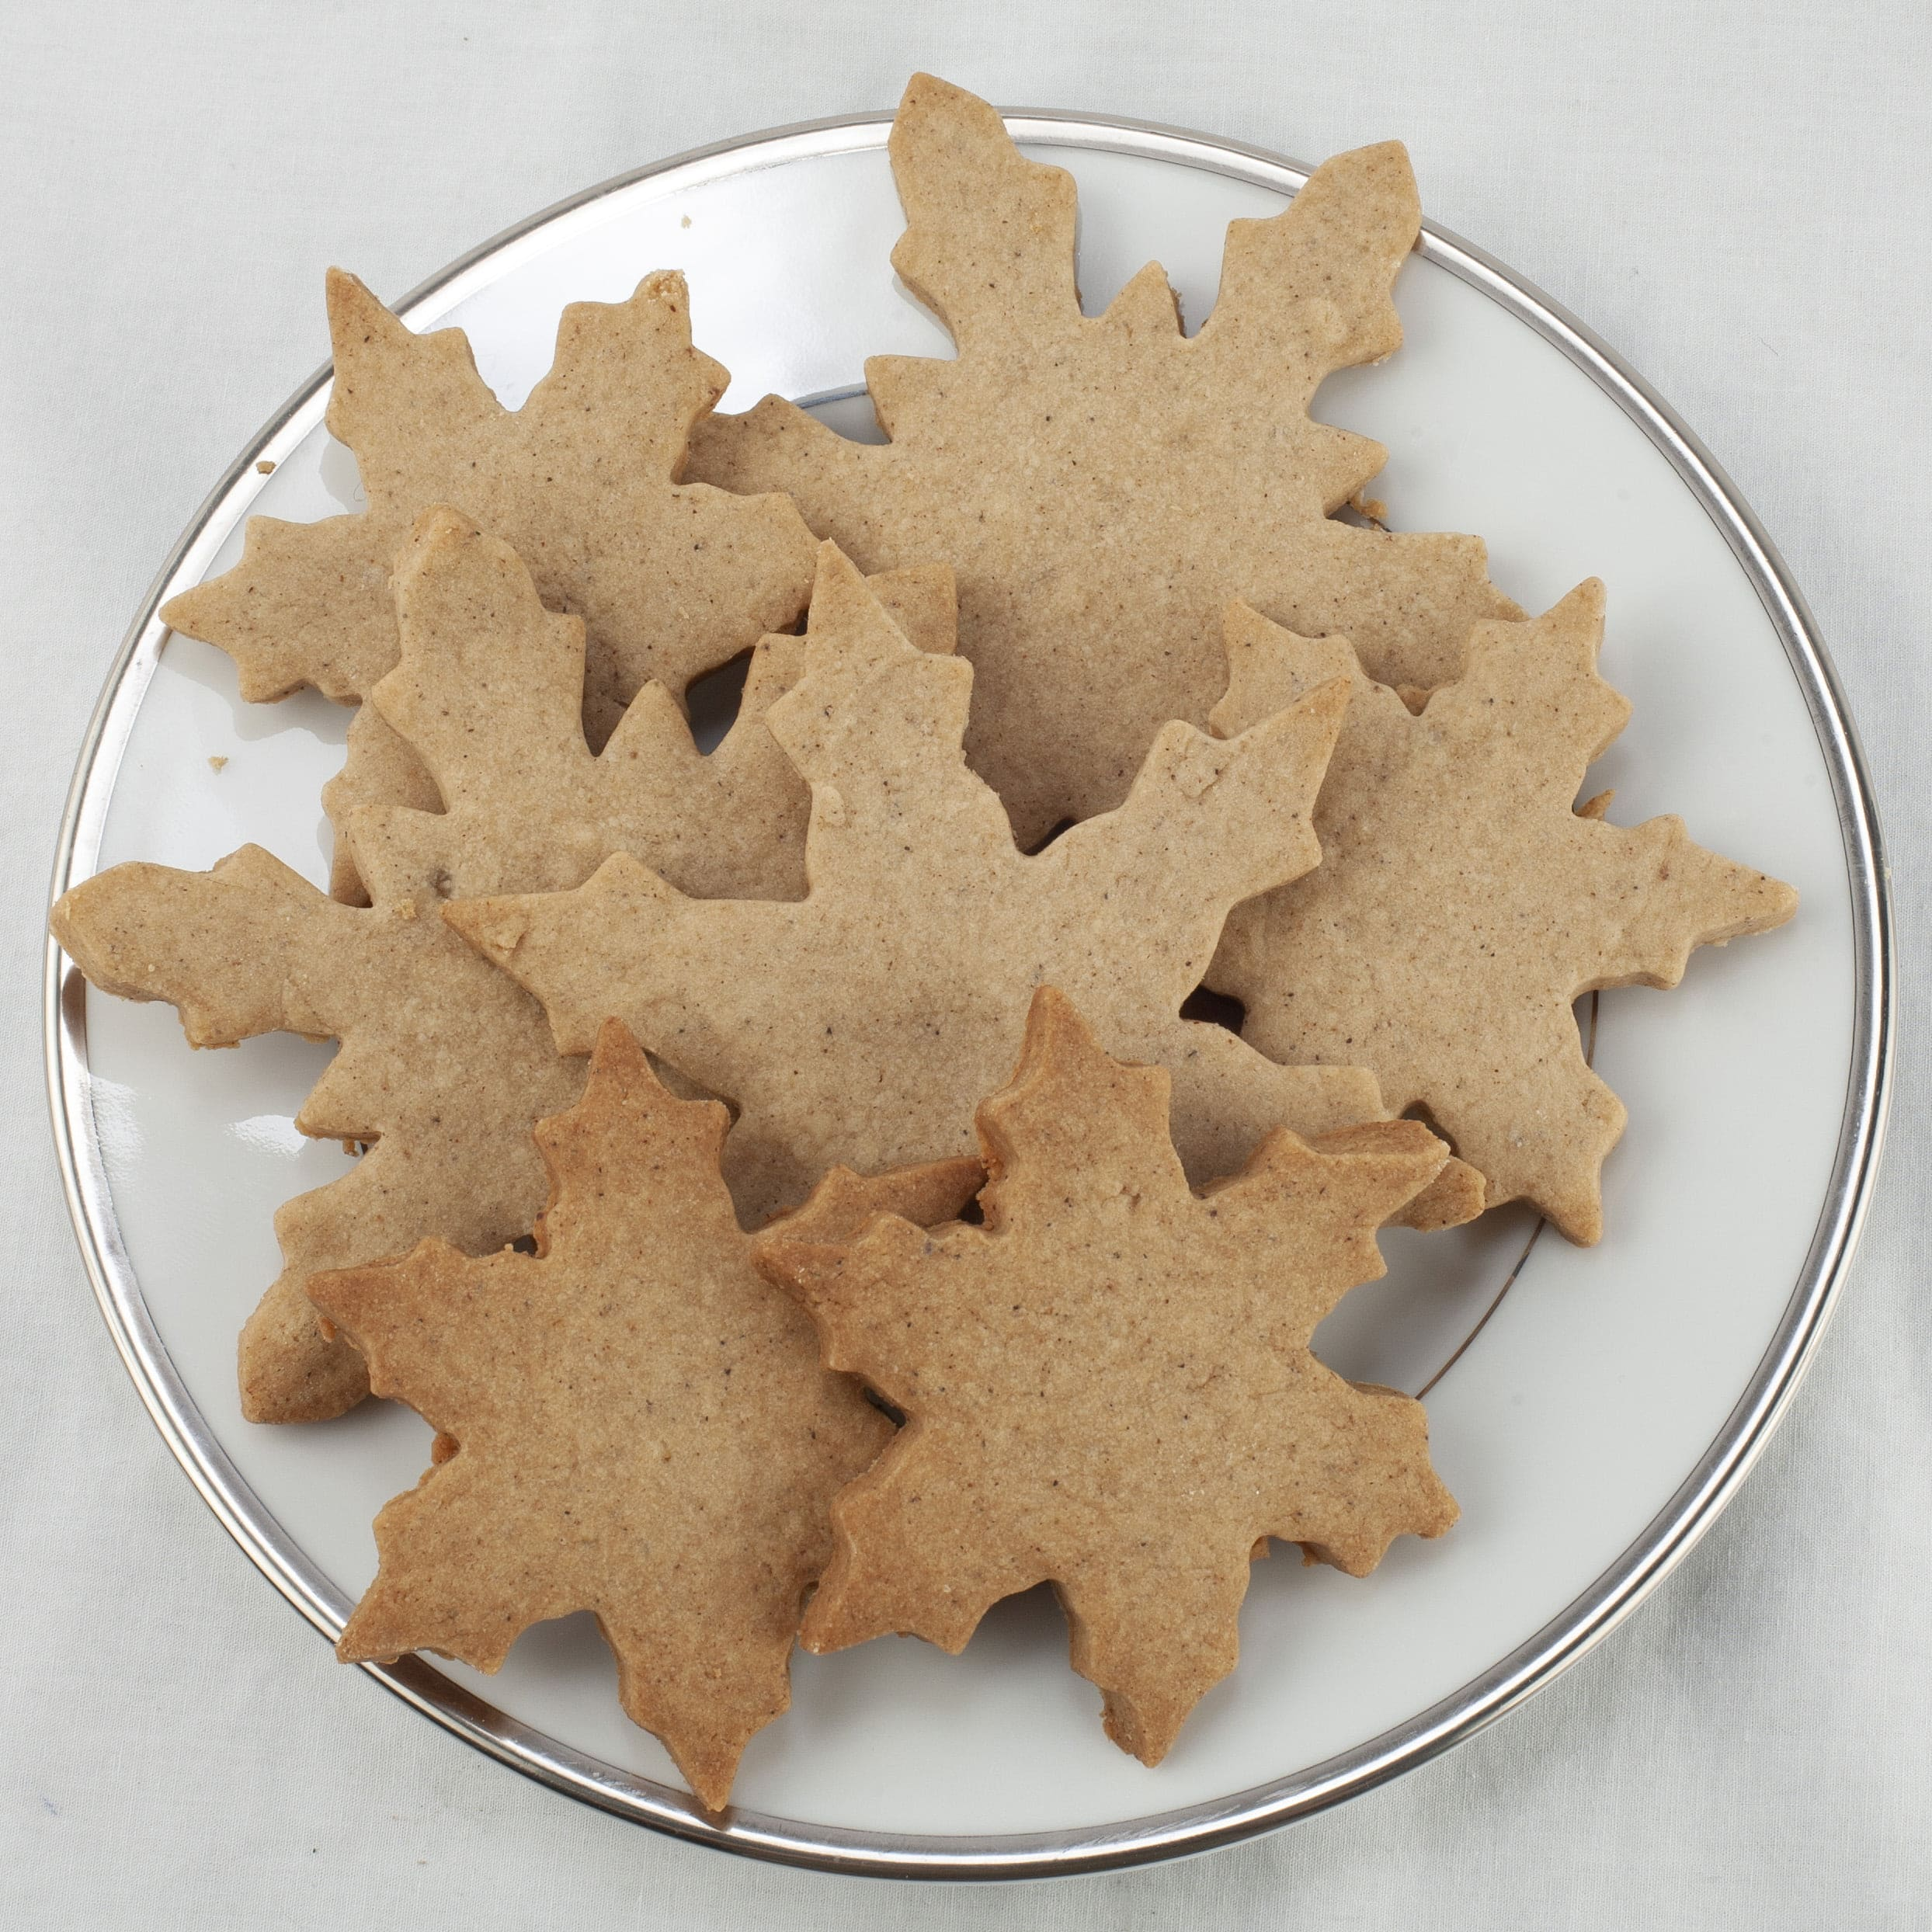 A pile of golden brown chai shortbread cookies - shaped like snowflakes - are piled on a small white plate.